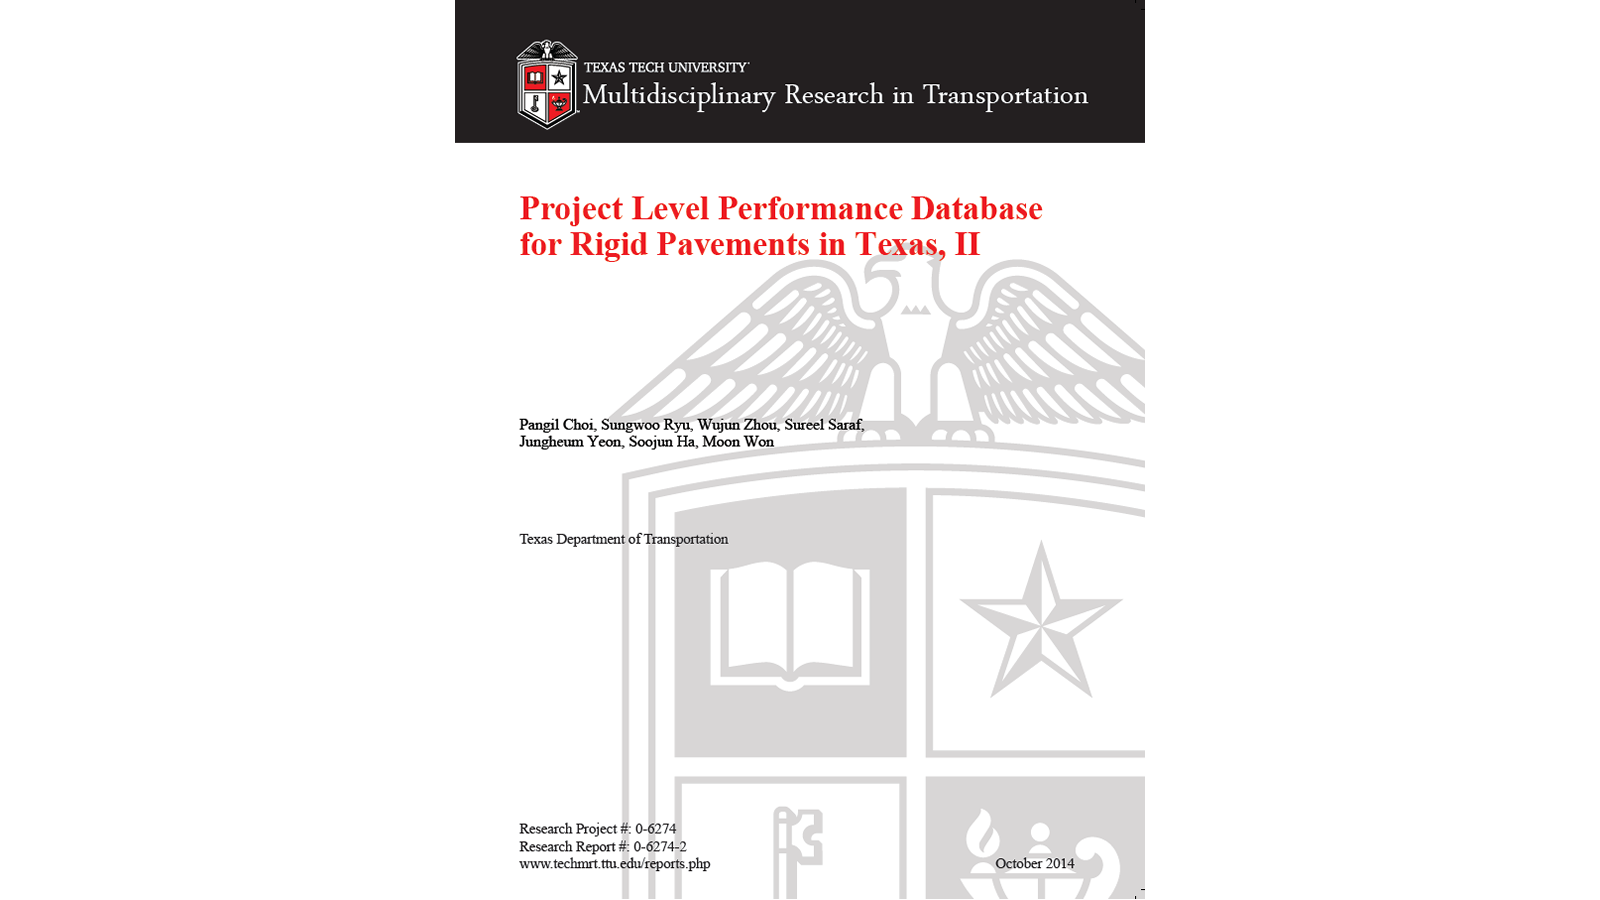 Project Level Performance Database for Rigid Pavements in Texas, II (FHWA/TX-14-0-6274-2)